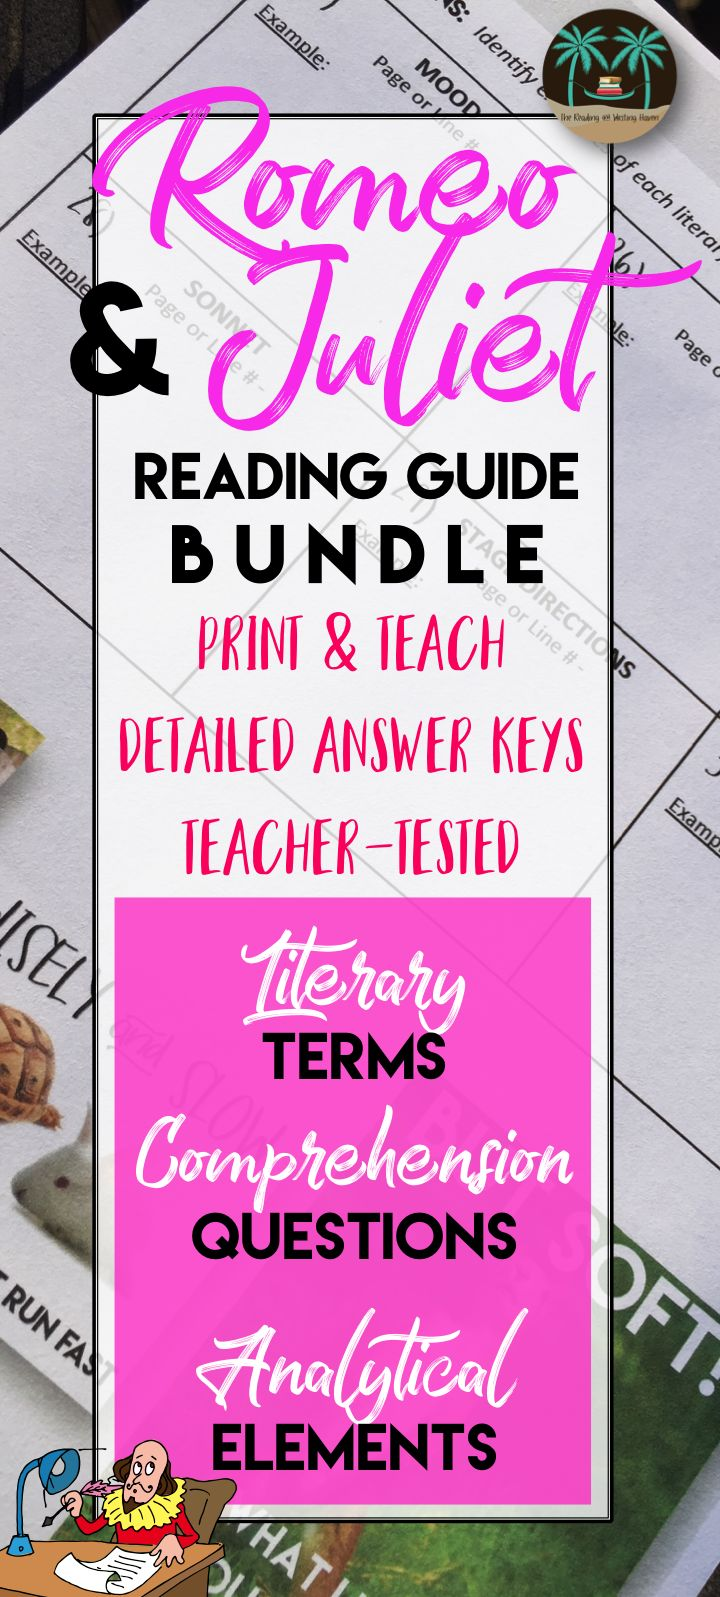 Teaching Shakespeare? This Romeo and Juliet reading guide bundle has everything you need - comprehension, analysis, and literary terms. Complete and answer keys are included. Print and teach!